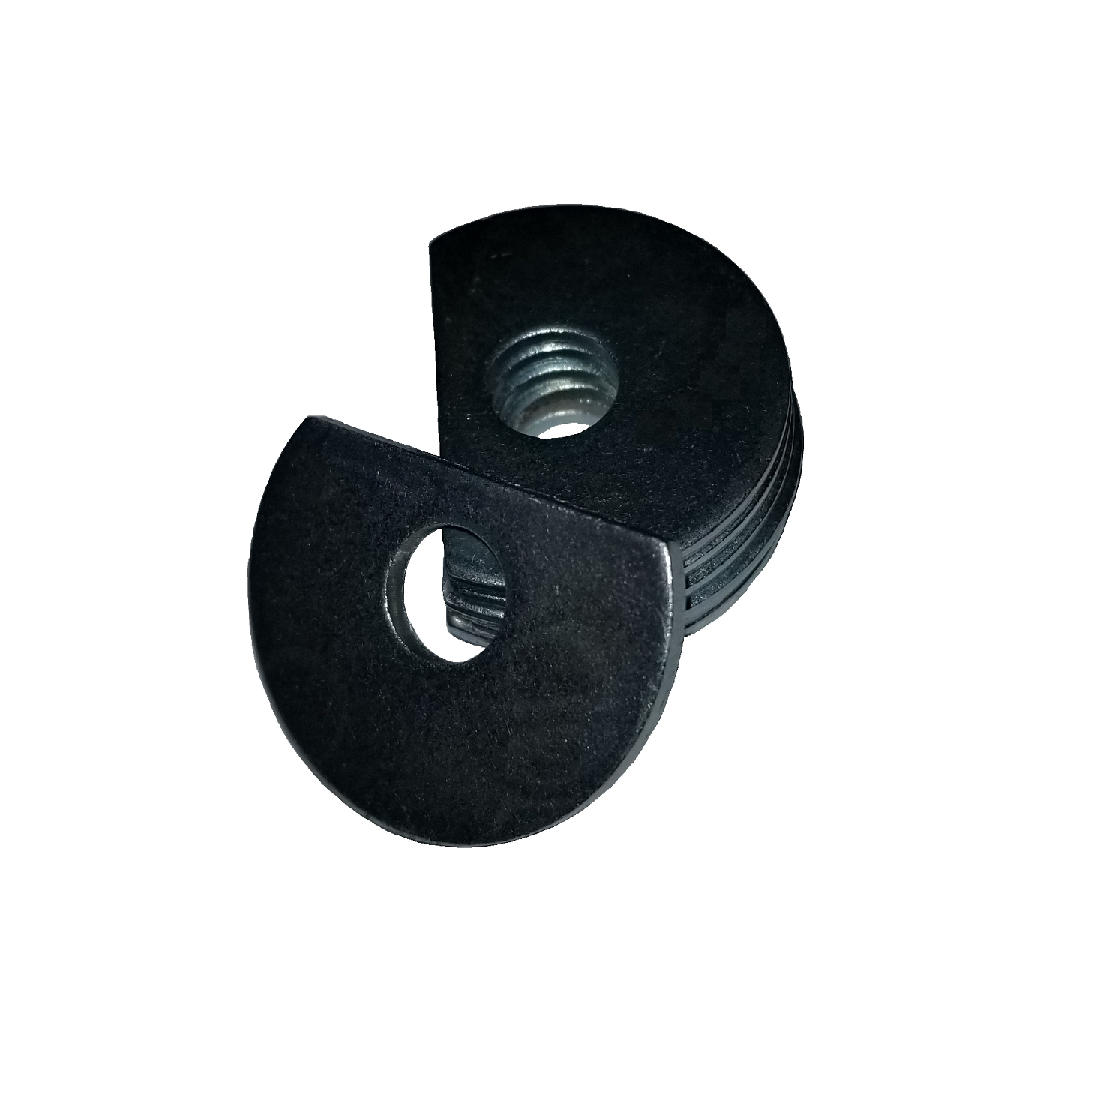 Clipped OD Washer - 0.656 ID, 1.312 OD, 0.094 Thick, Low Carbon Steel - Soft, Zinc & Yellow